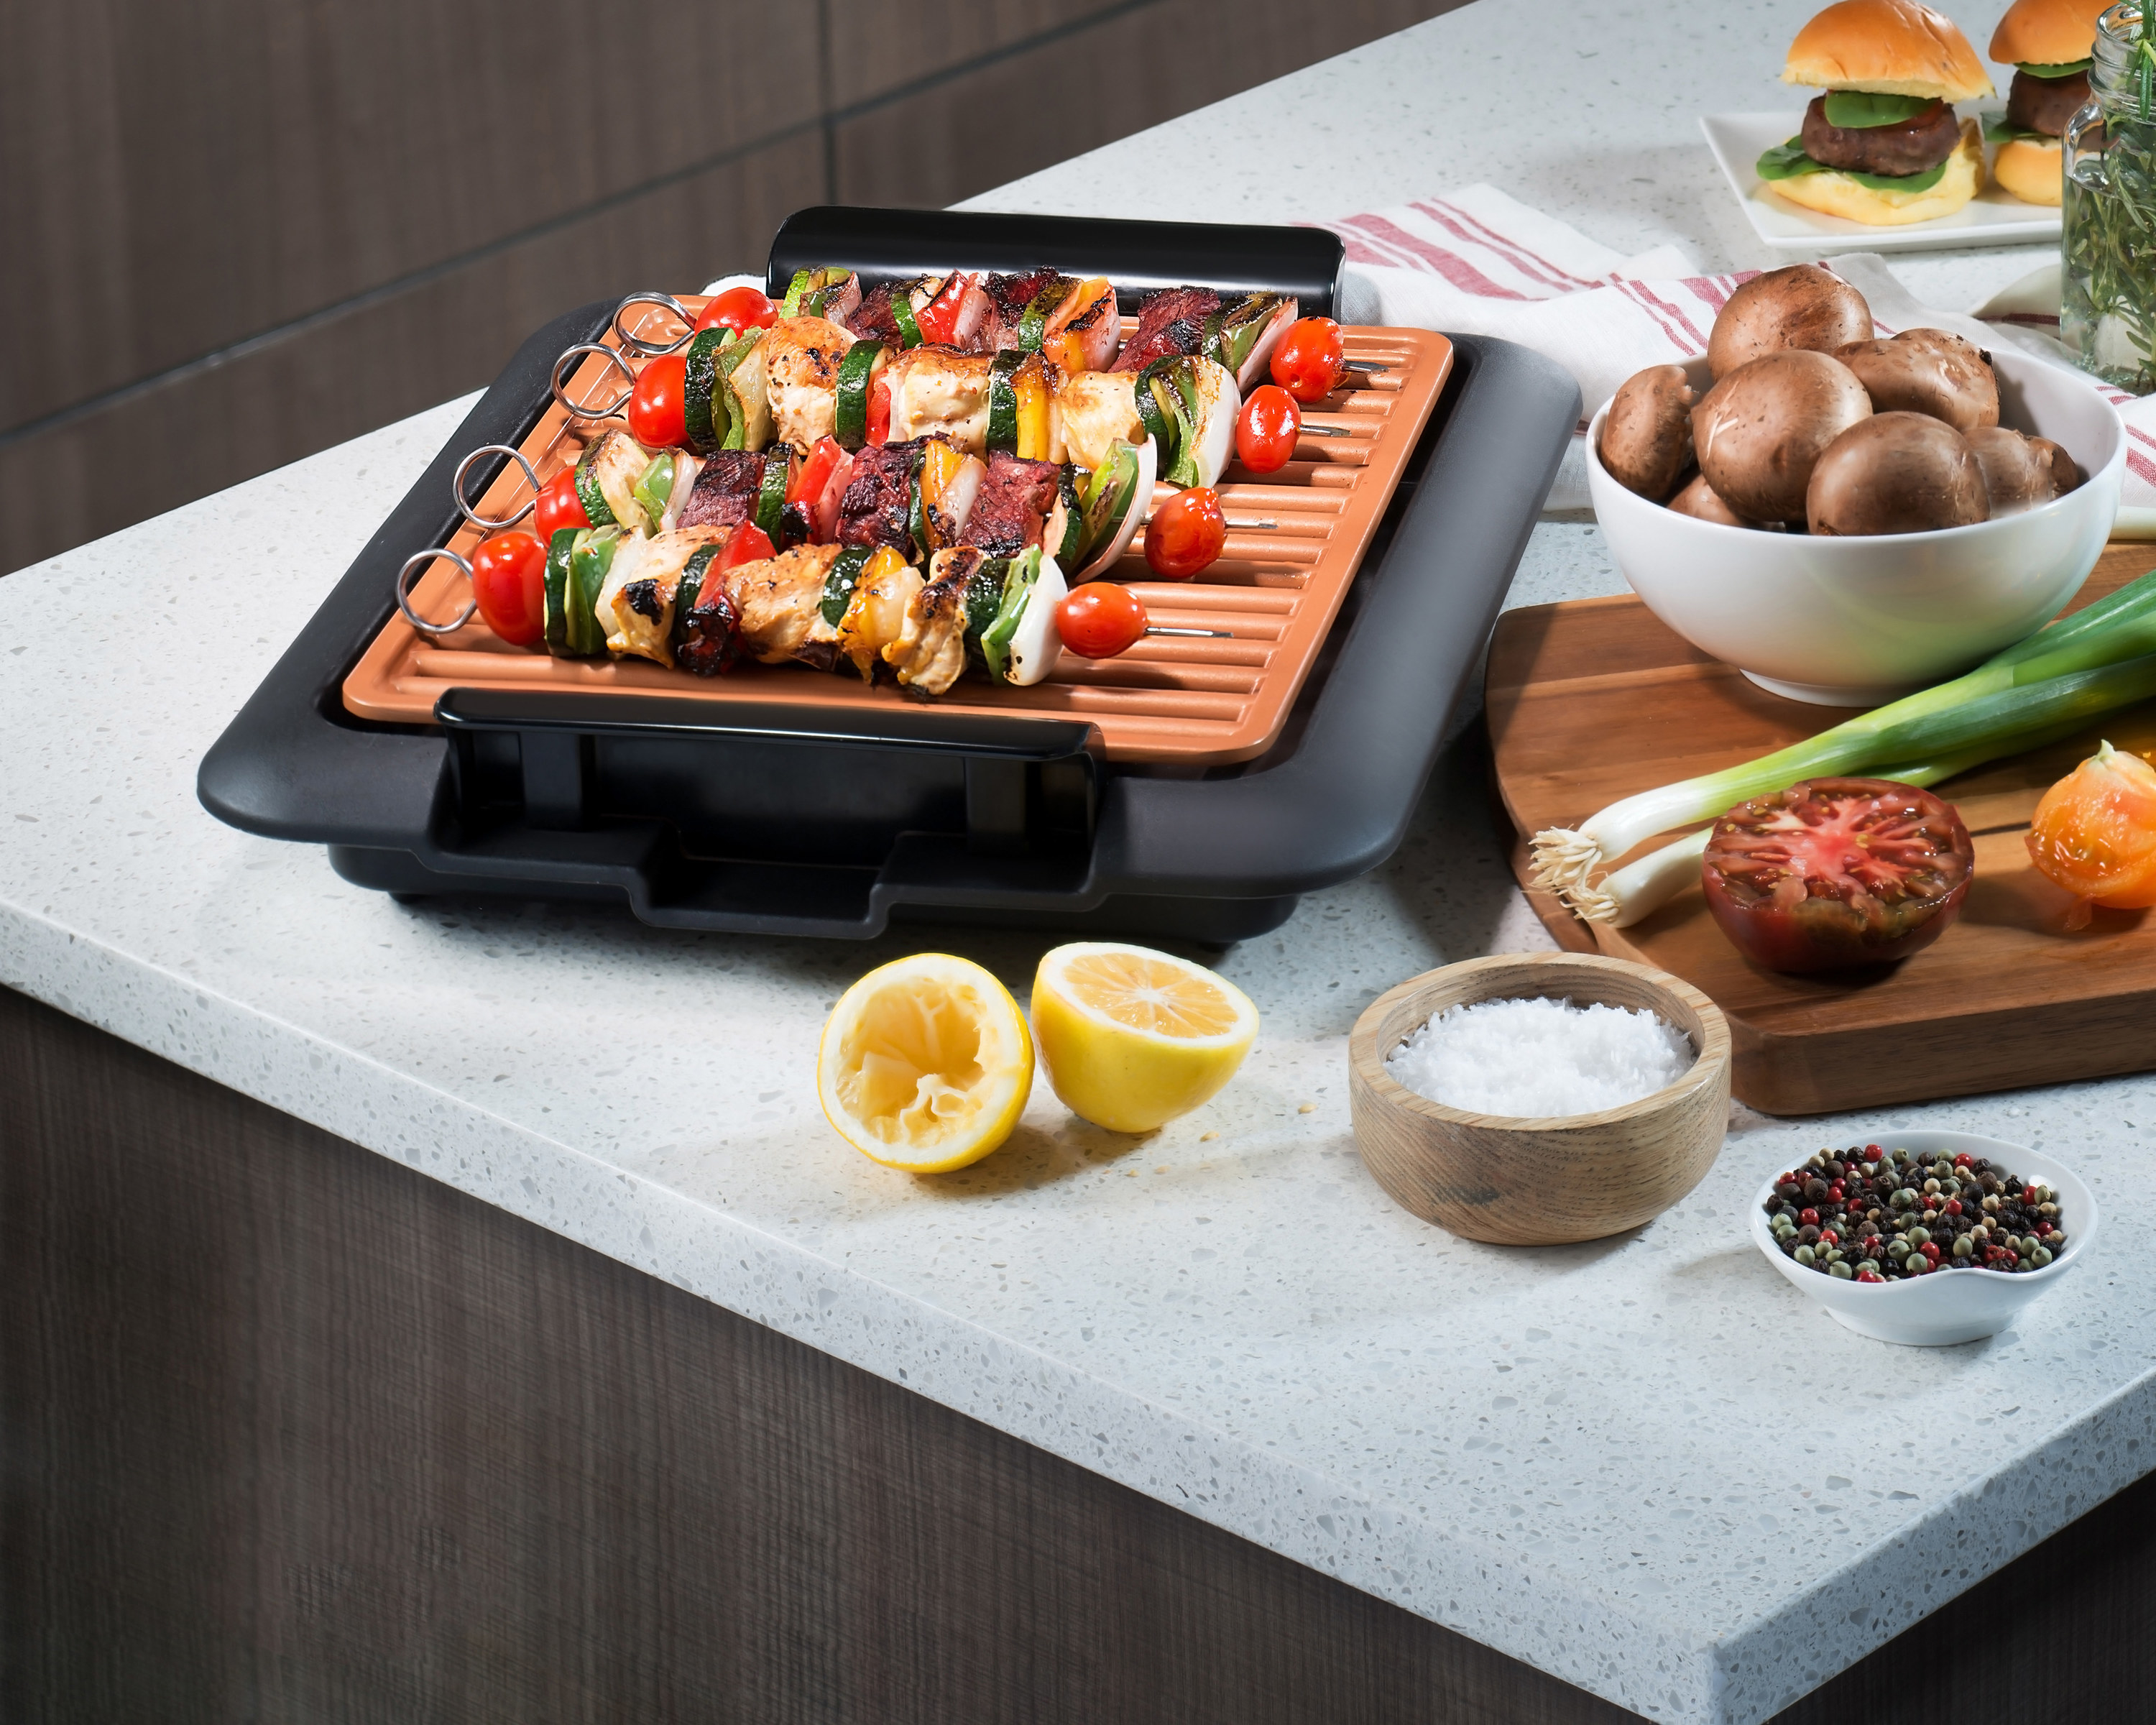 the grill displayed indoors being used to grill chicken and vegetable skewers